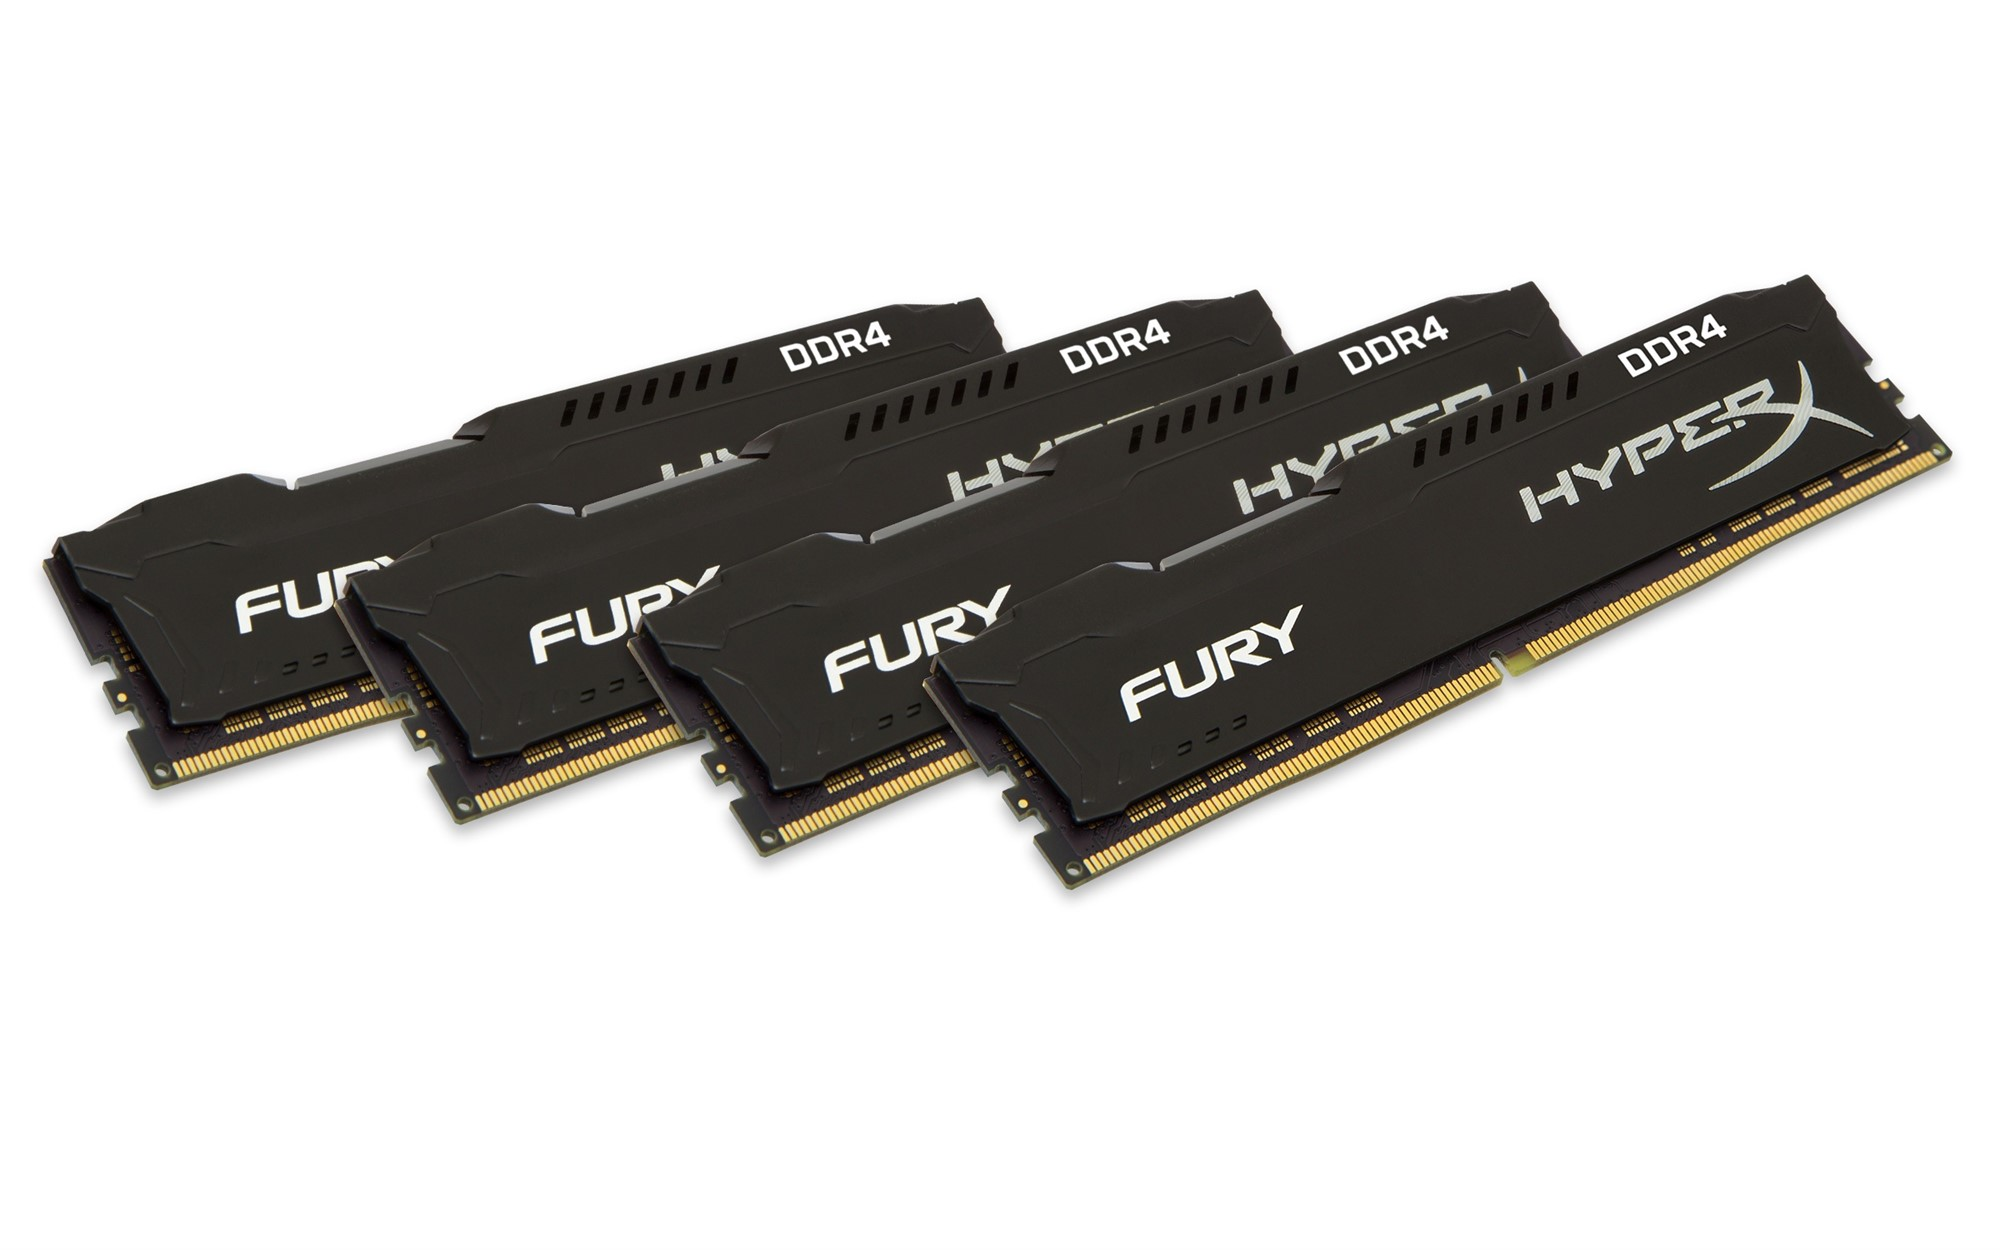 HYPERX FURY BLACK 32GB DDR4 2666MHZ KIT MEMORY MODULE